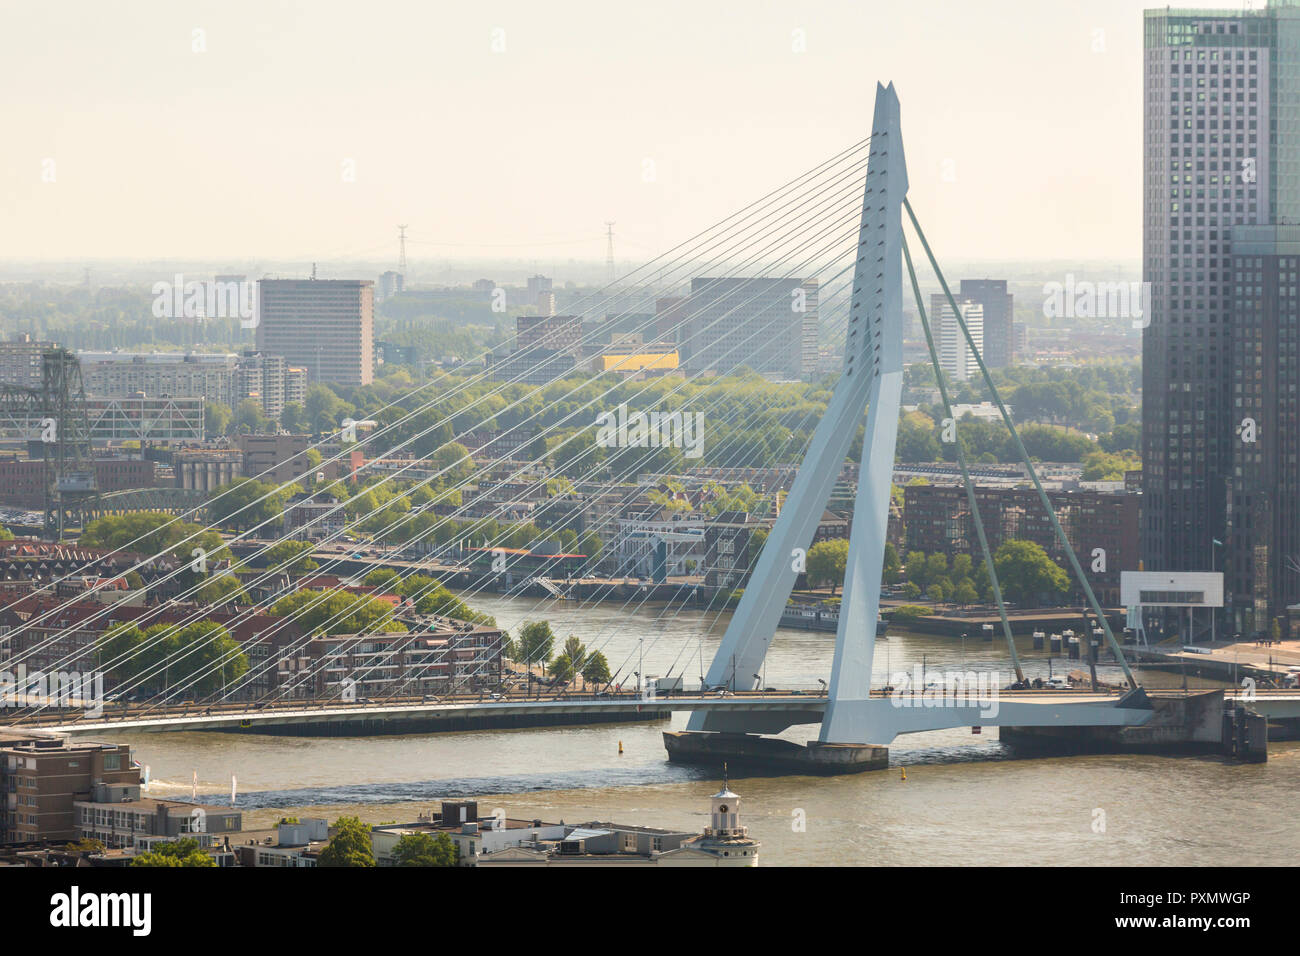 aerial view of the Erasmus bridge on the river Nieuwe Maas in the center of Rotterdam in the Netherlands Holland Stock Photo